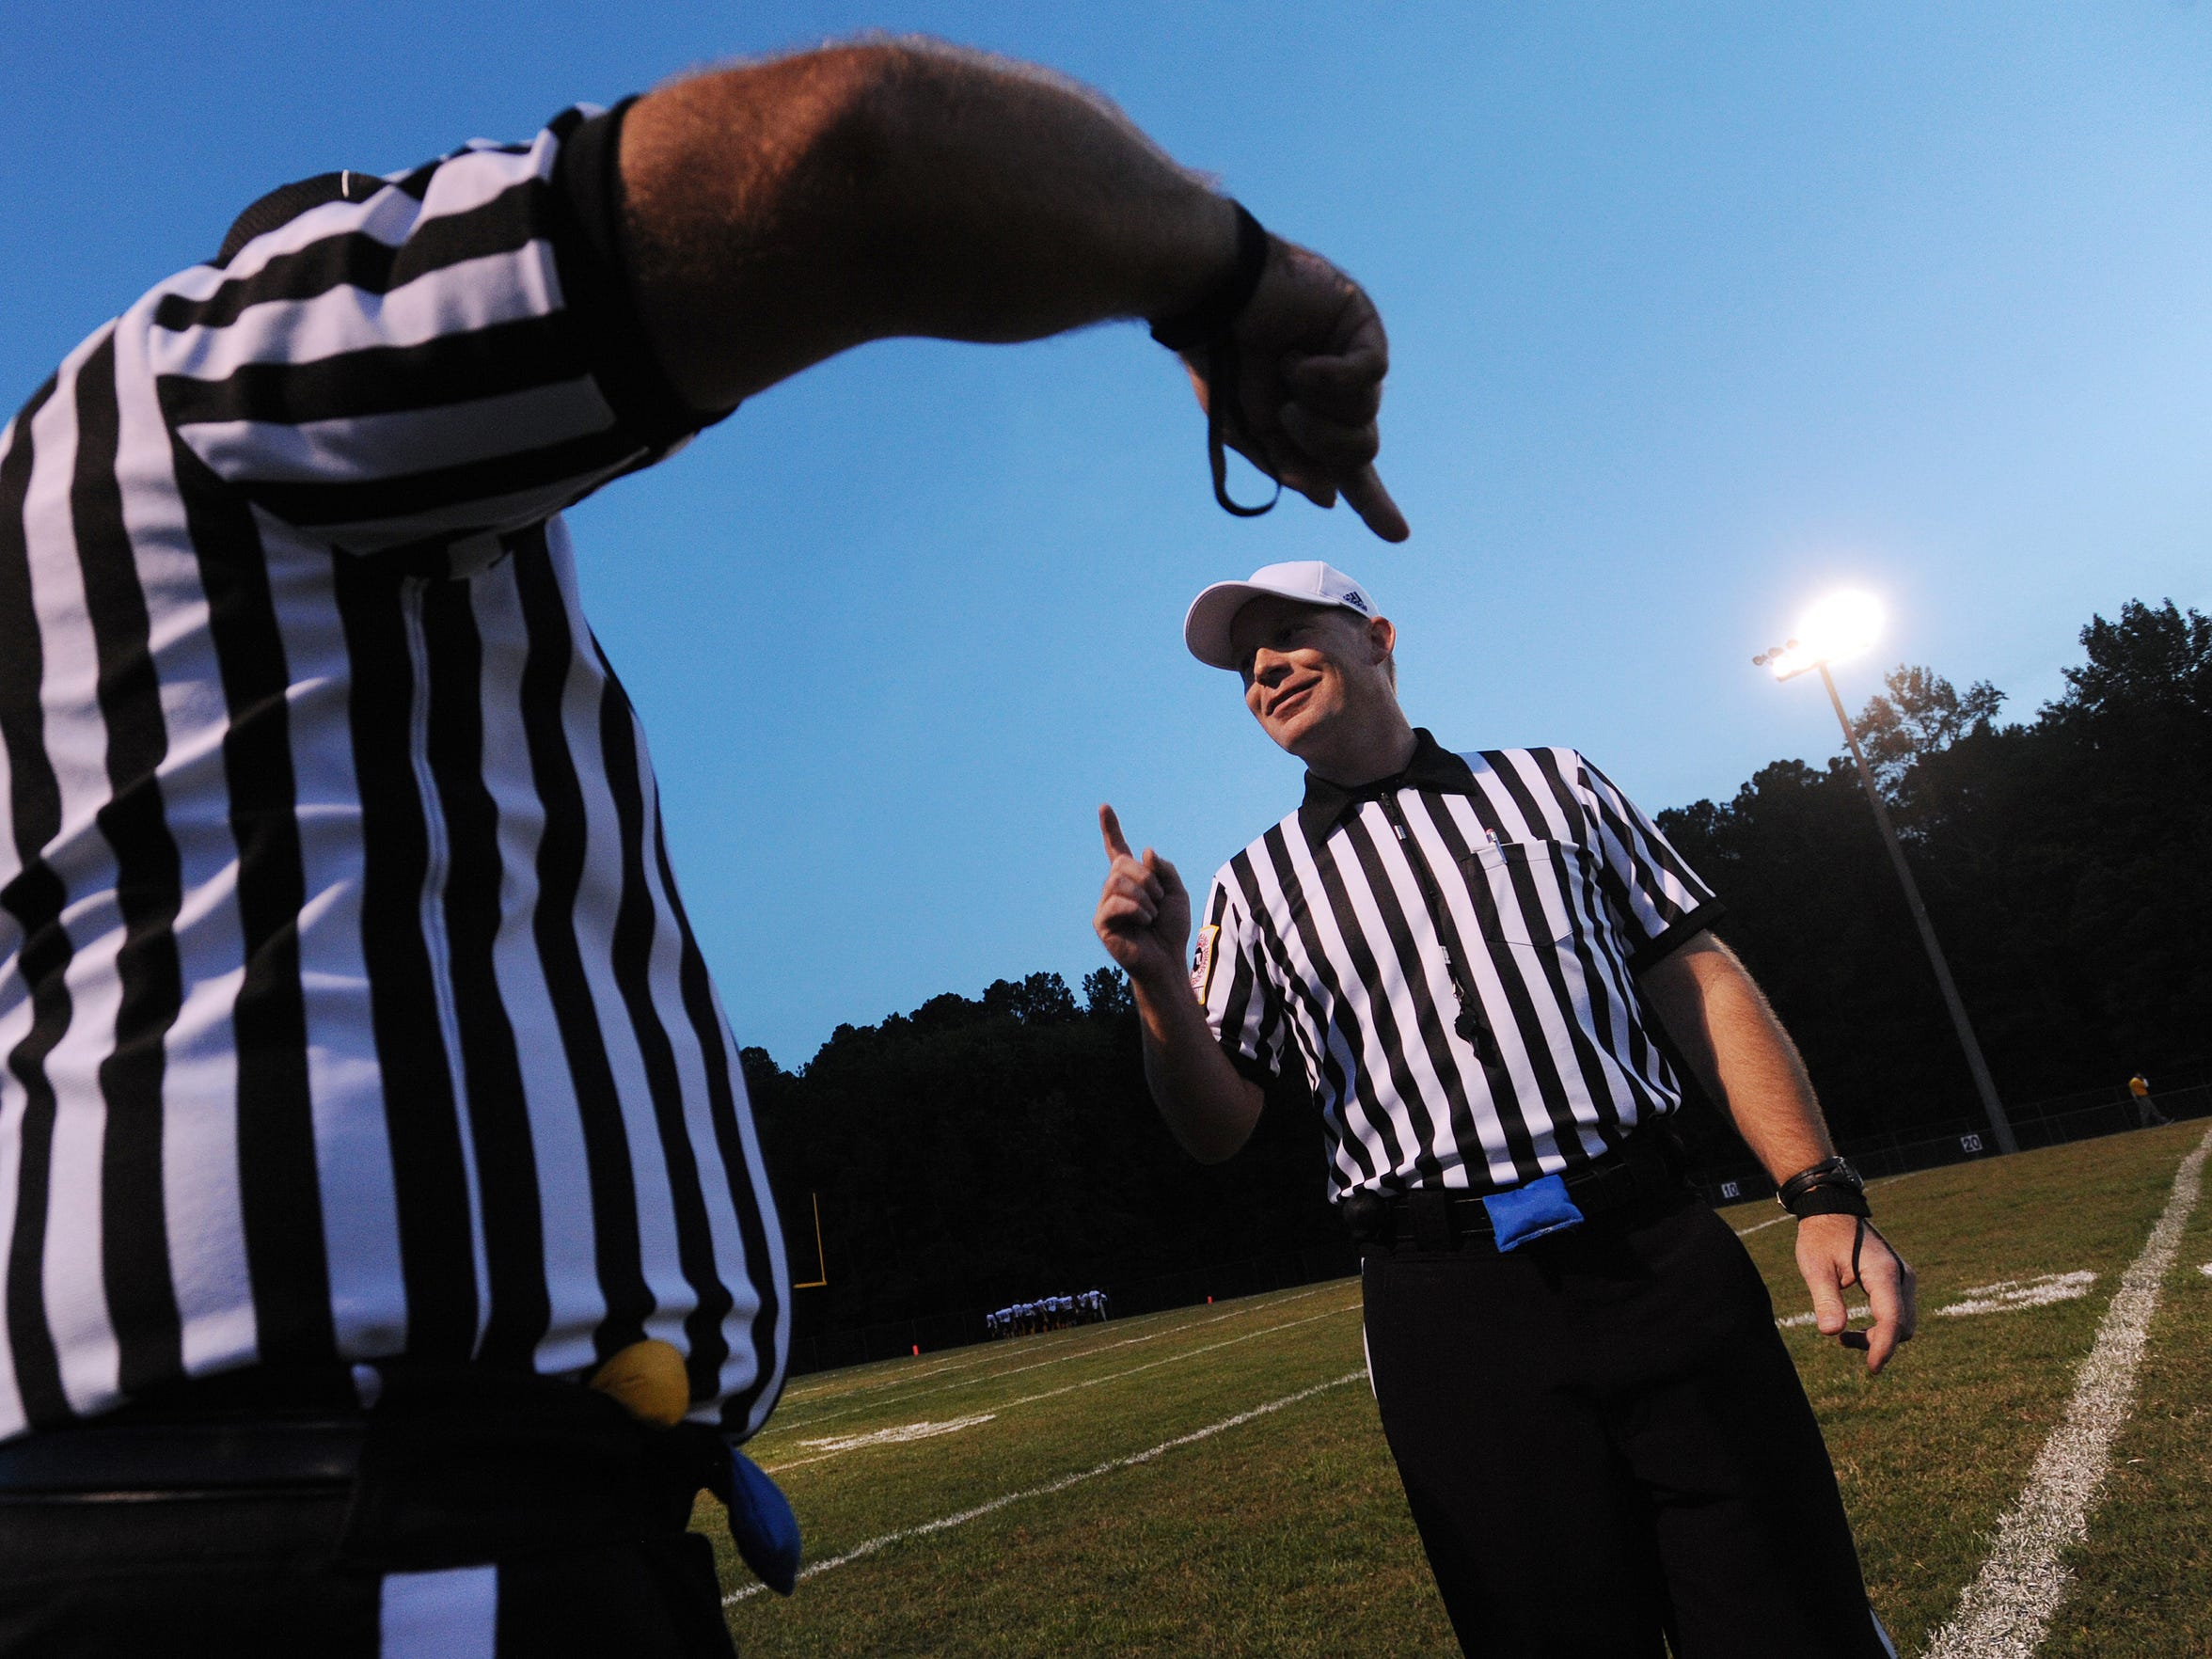 Referee Chuck Brosch, right, speaks with one of his crew members before the start of the Nandua and Washington football game on Friday, Oct. 3, 2014 in Onley, Va. Brosch has been a football official for 21 years and is a member of the Bayside Football Officials Association.